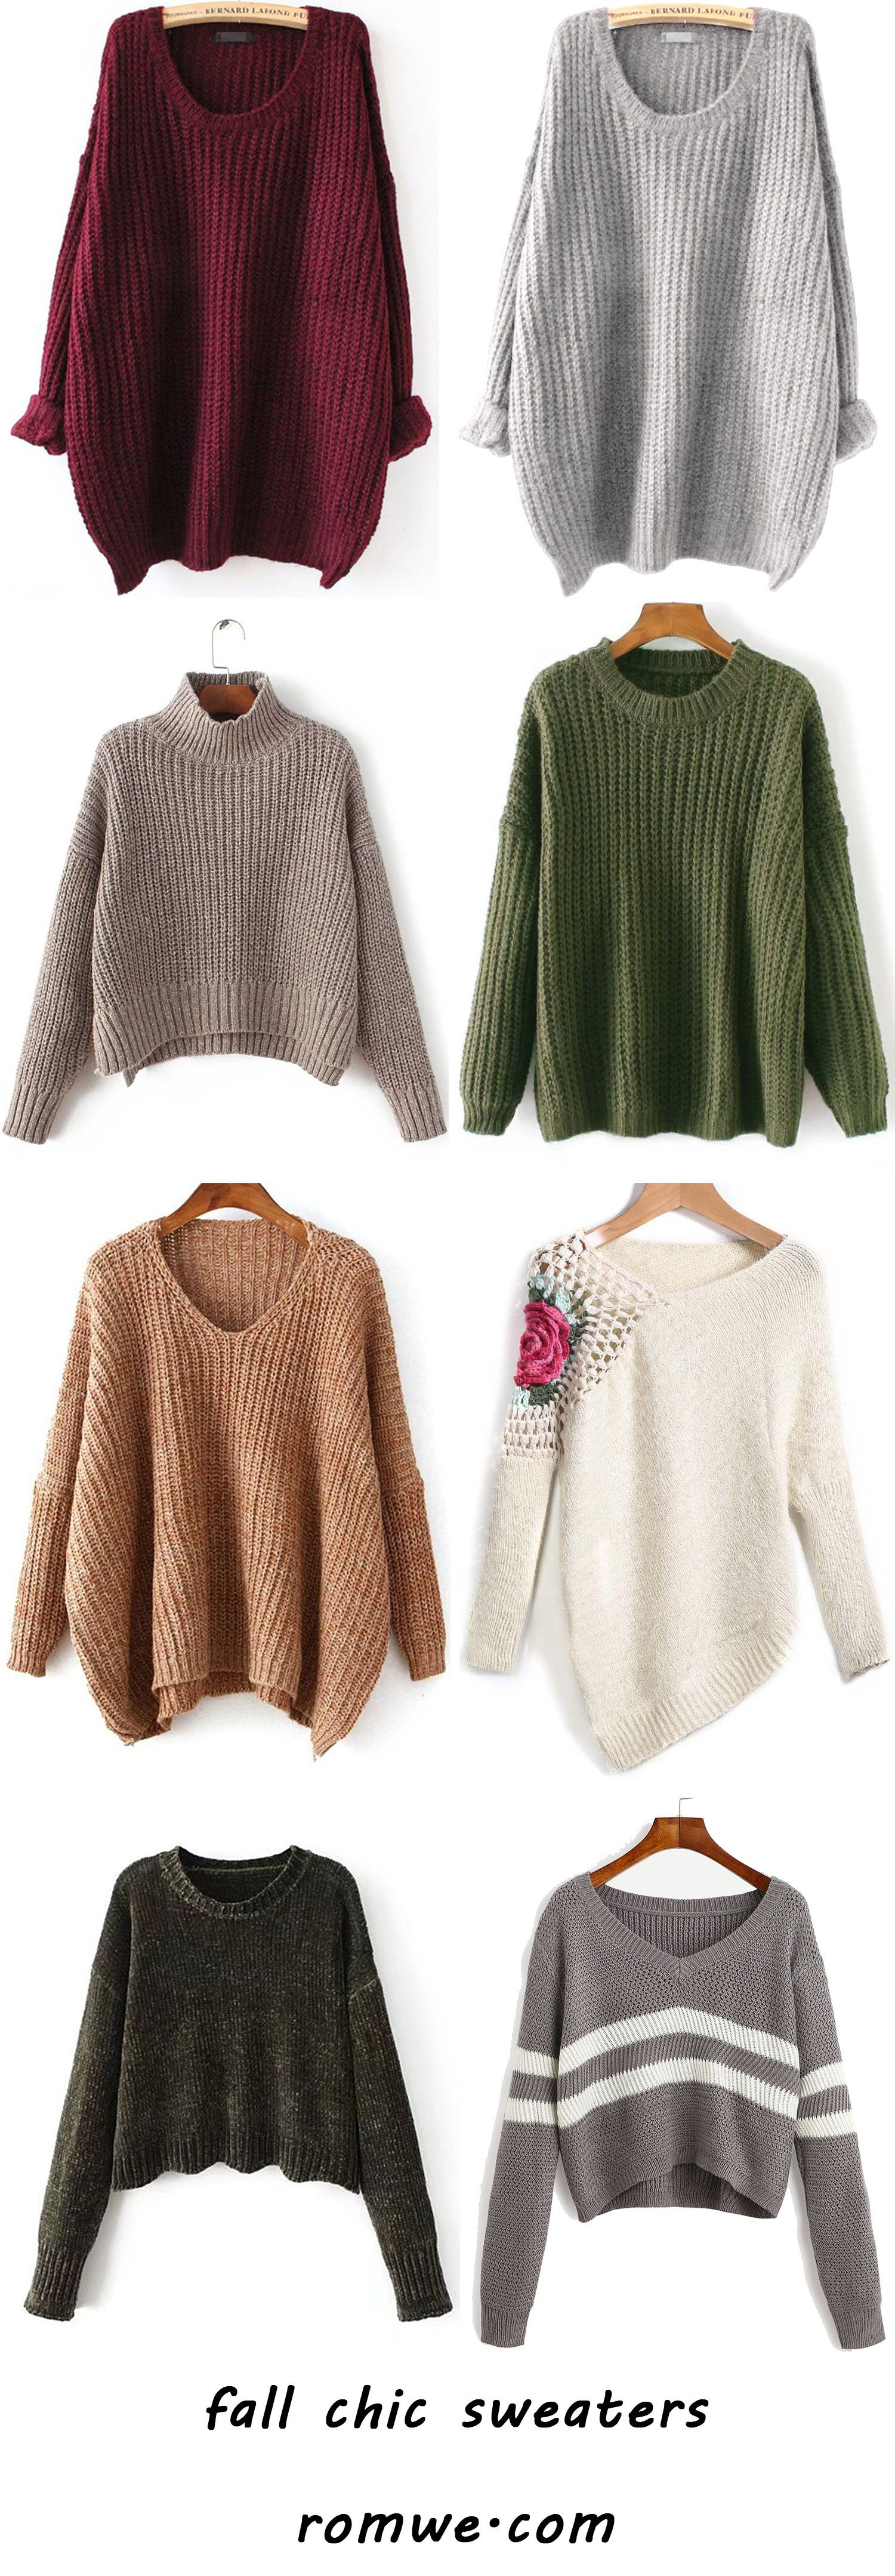 chic fall sweaters 2017 - romwe.com | Romwe Hot Buy | Pinterest ...